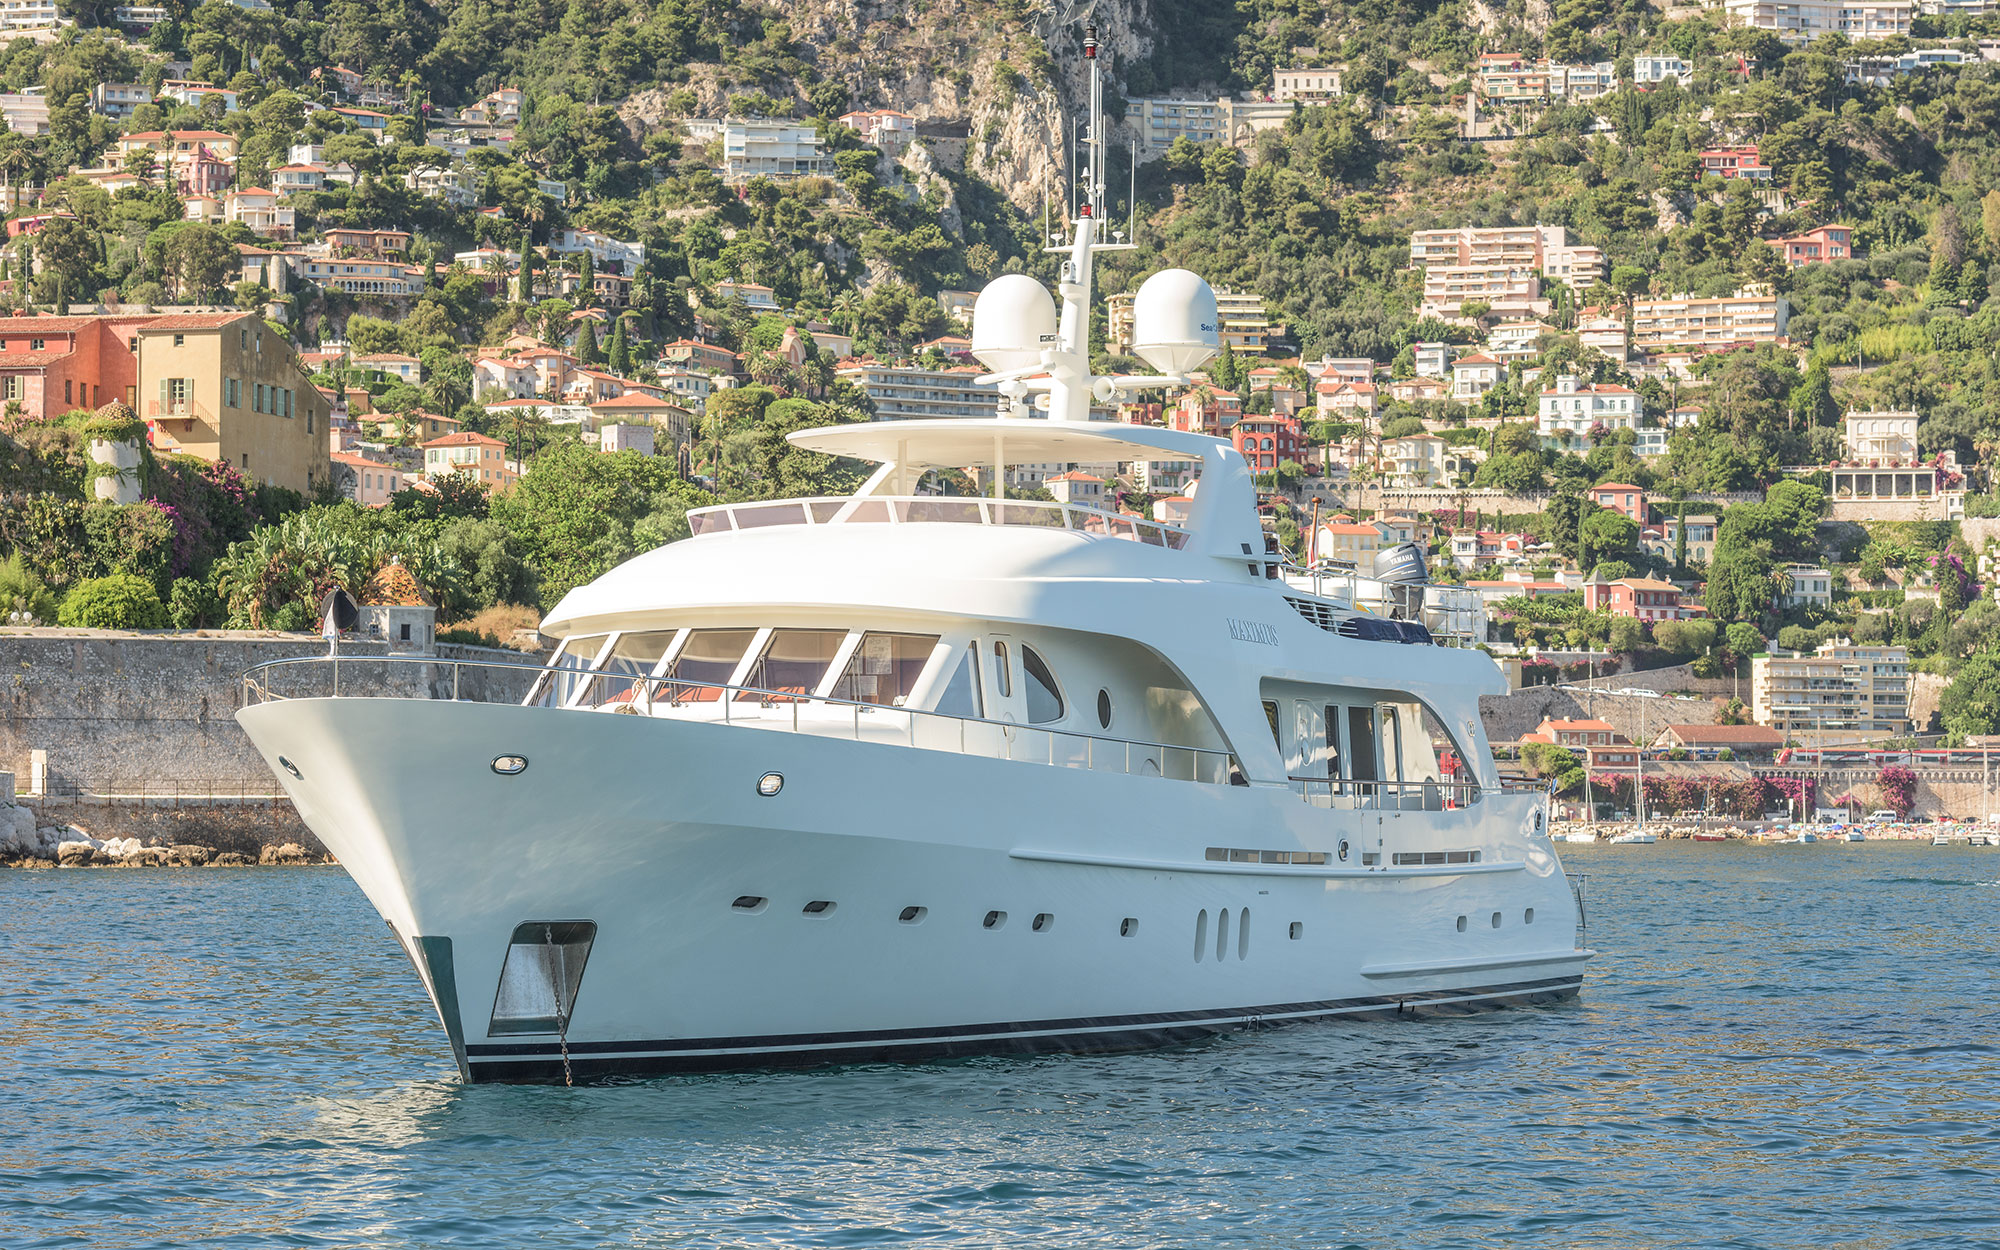 MAXIMUS-STAR-yacht-for-sale-for-charter-01.jpg